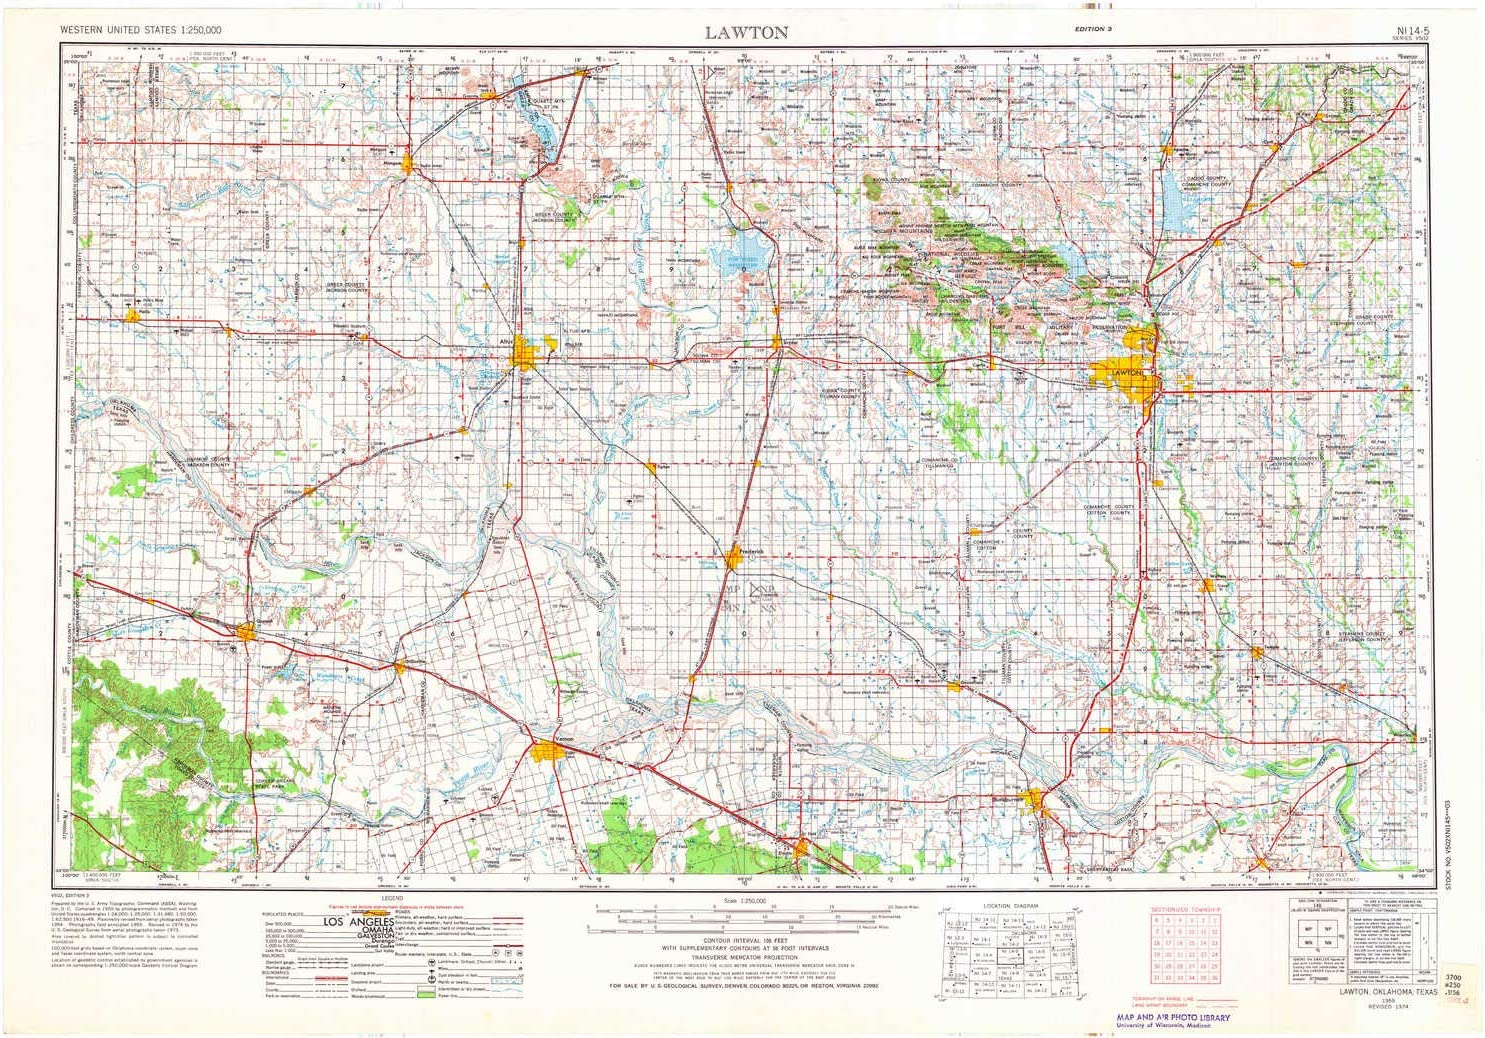 1 X 2 Degree 22.4 x 32.4 in Updated 1976 1:250000 Scale Historical YellowMaps Lawton OK topo map 1955